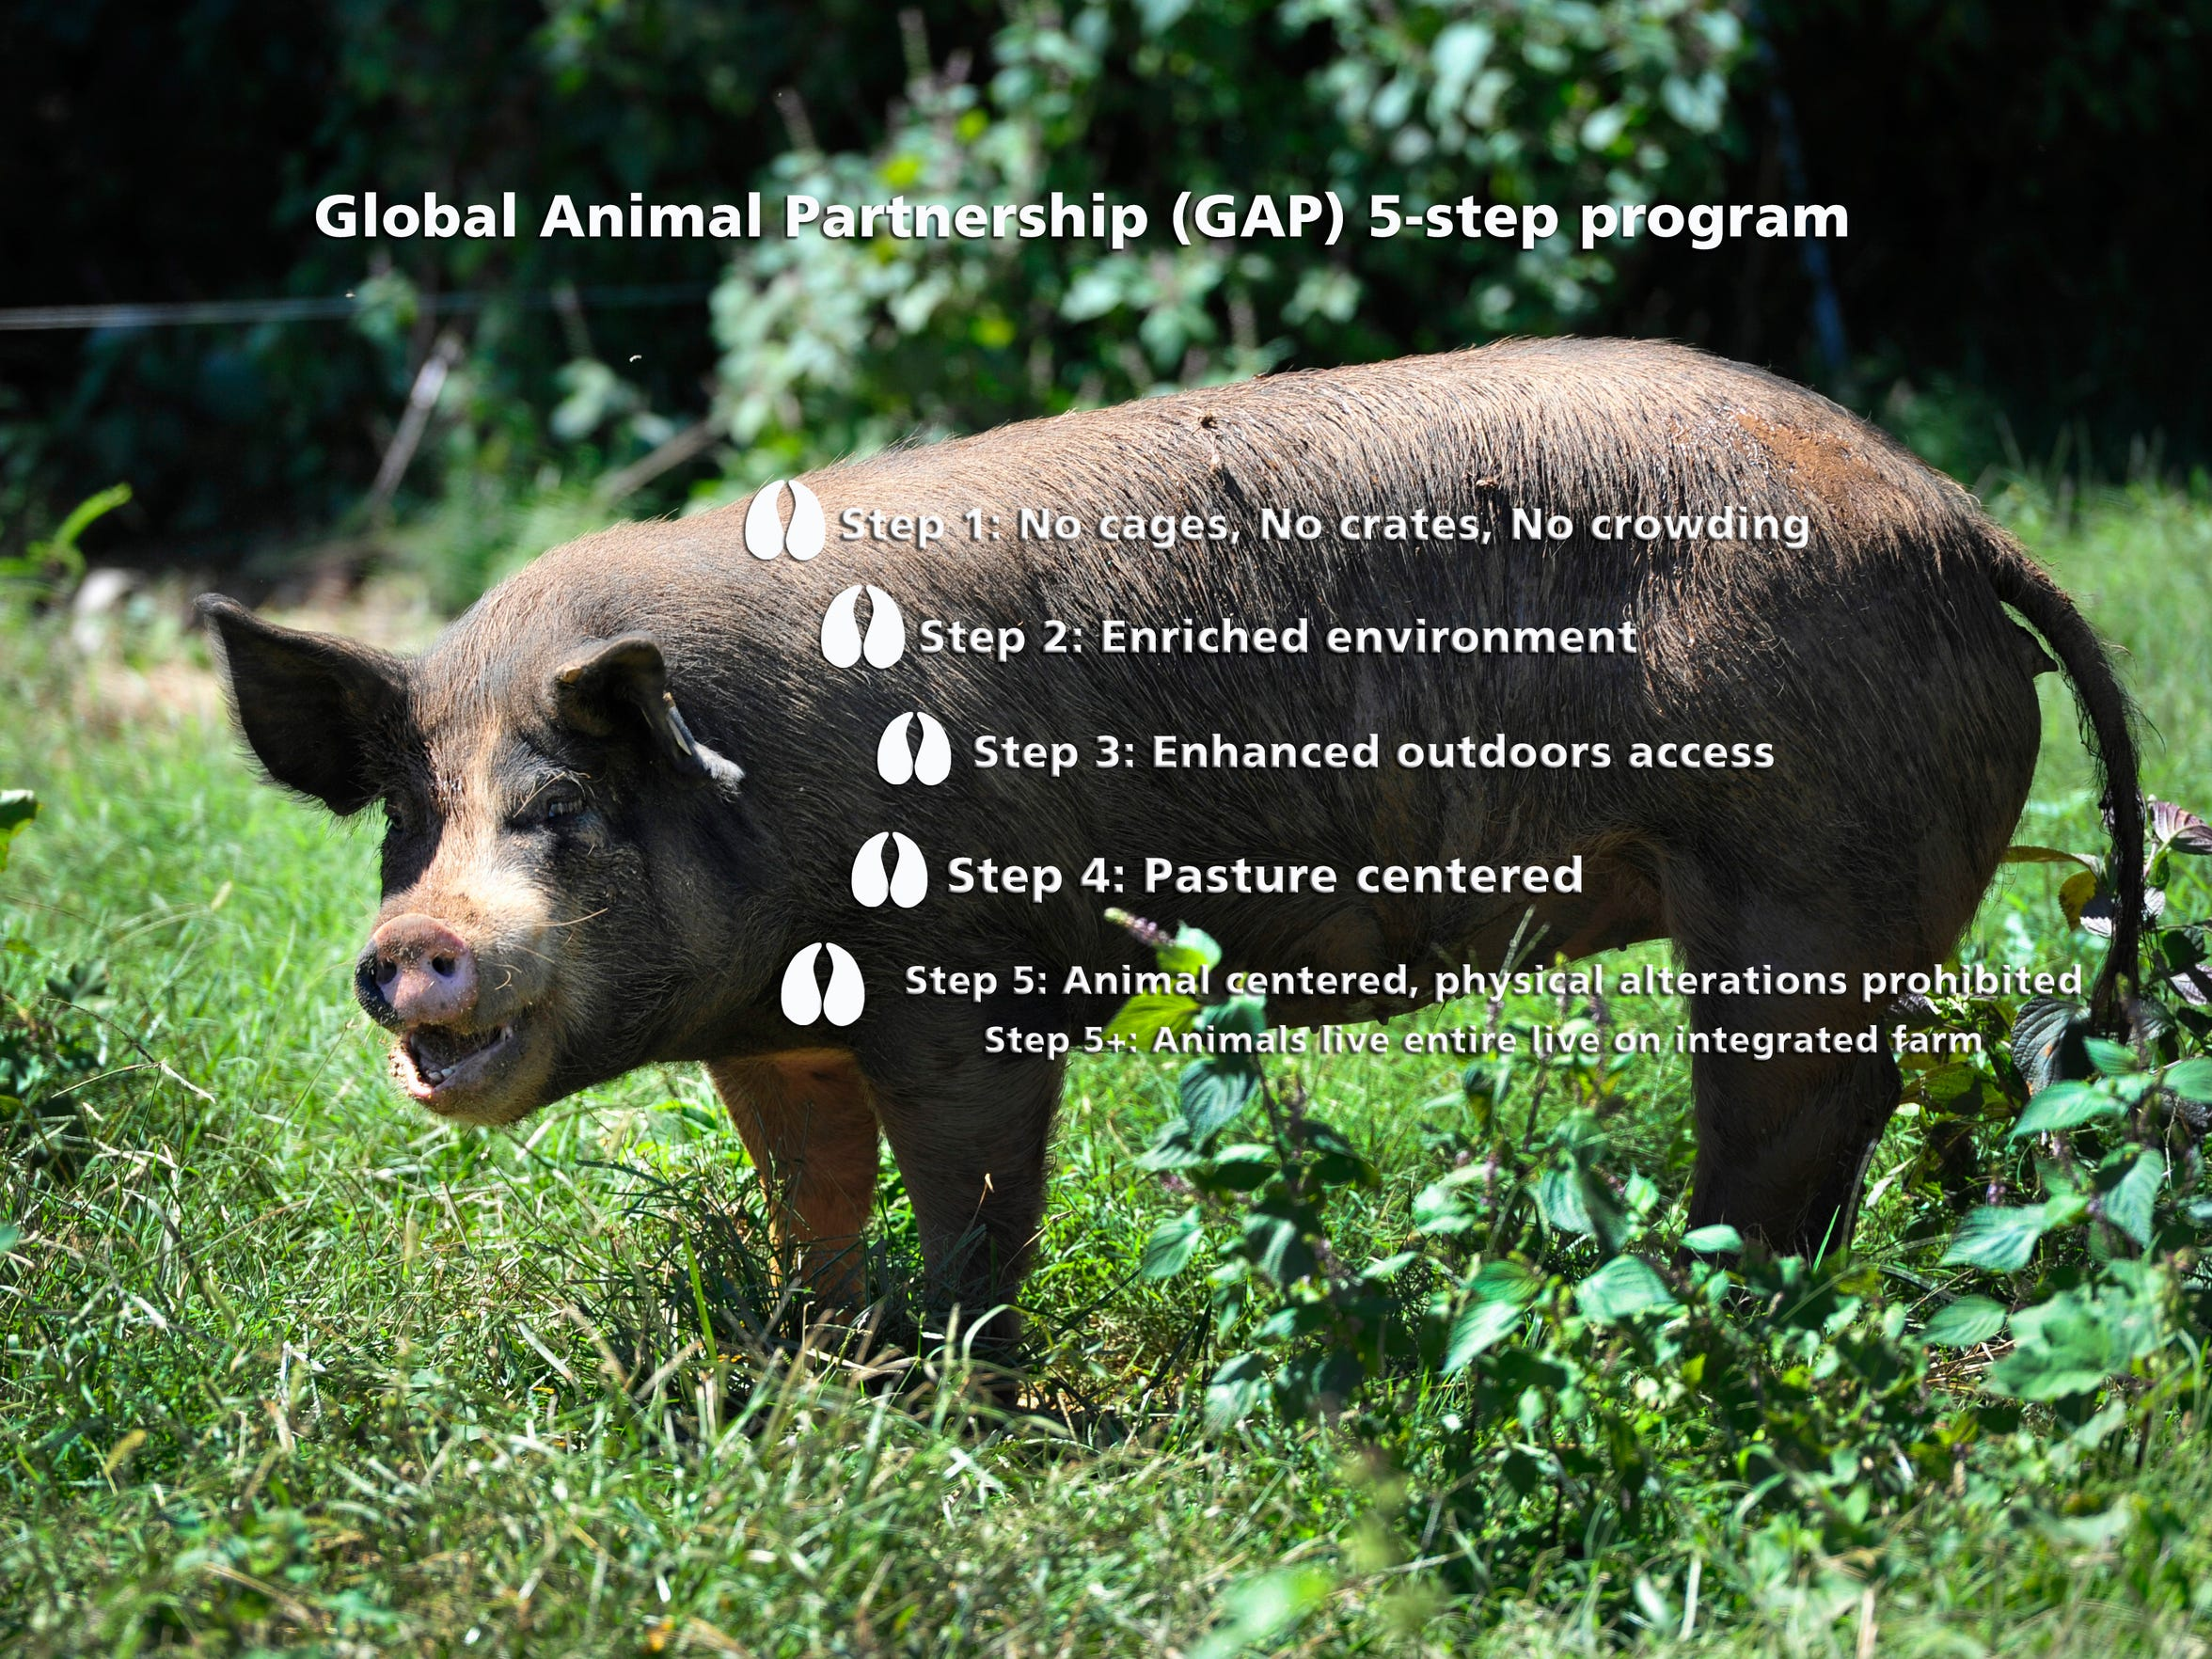 Click to enlarge image. A closer look at the Global Animal Partnership 5-step program.